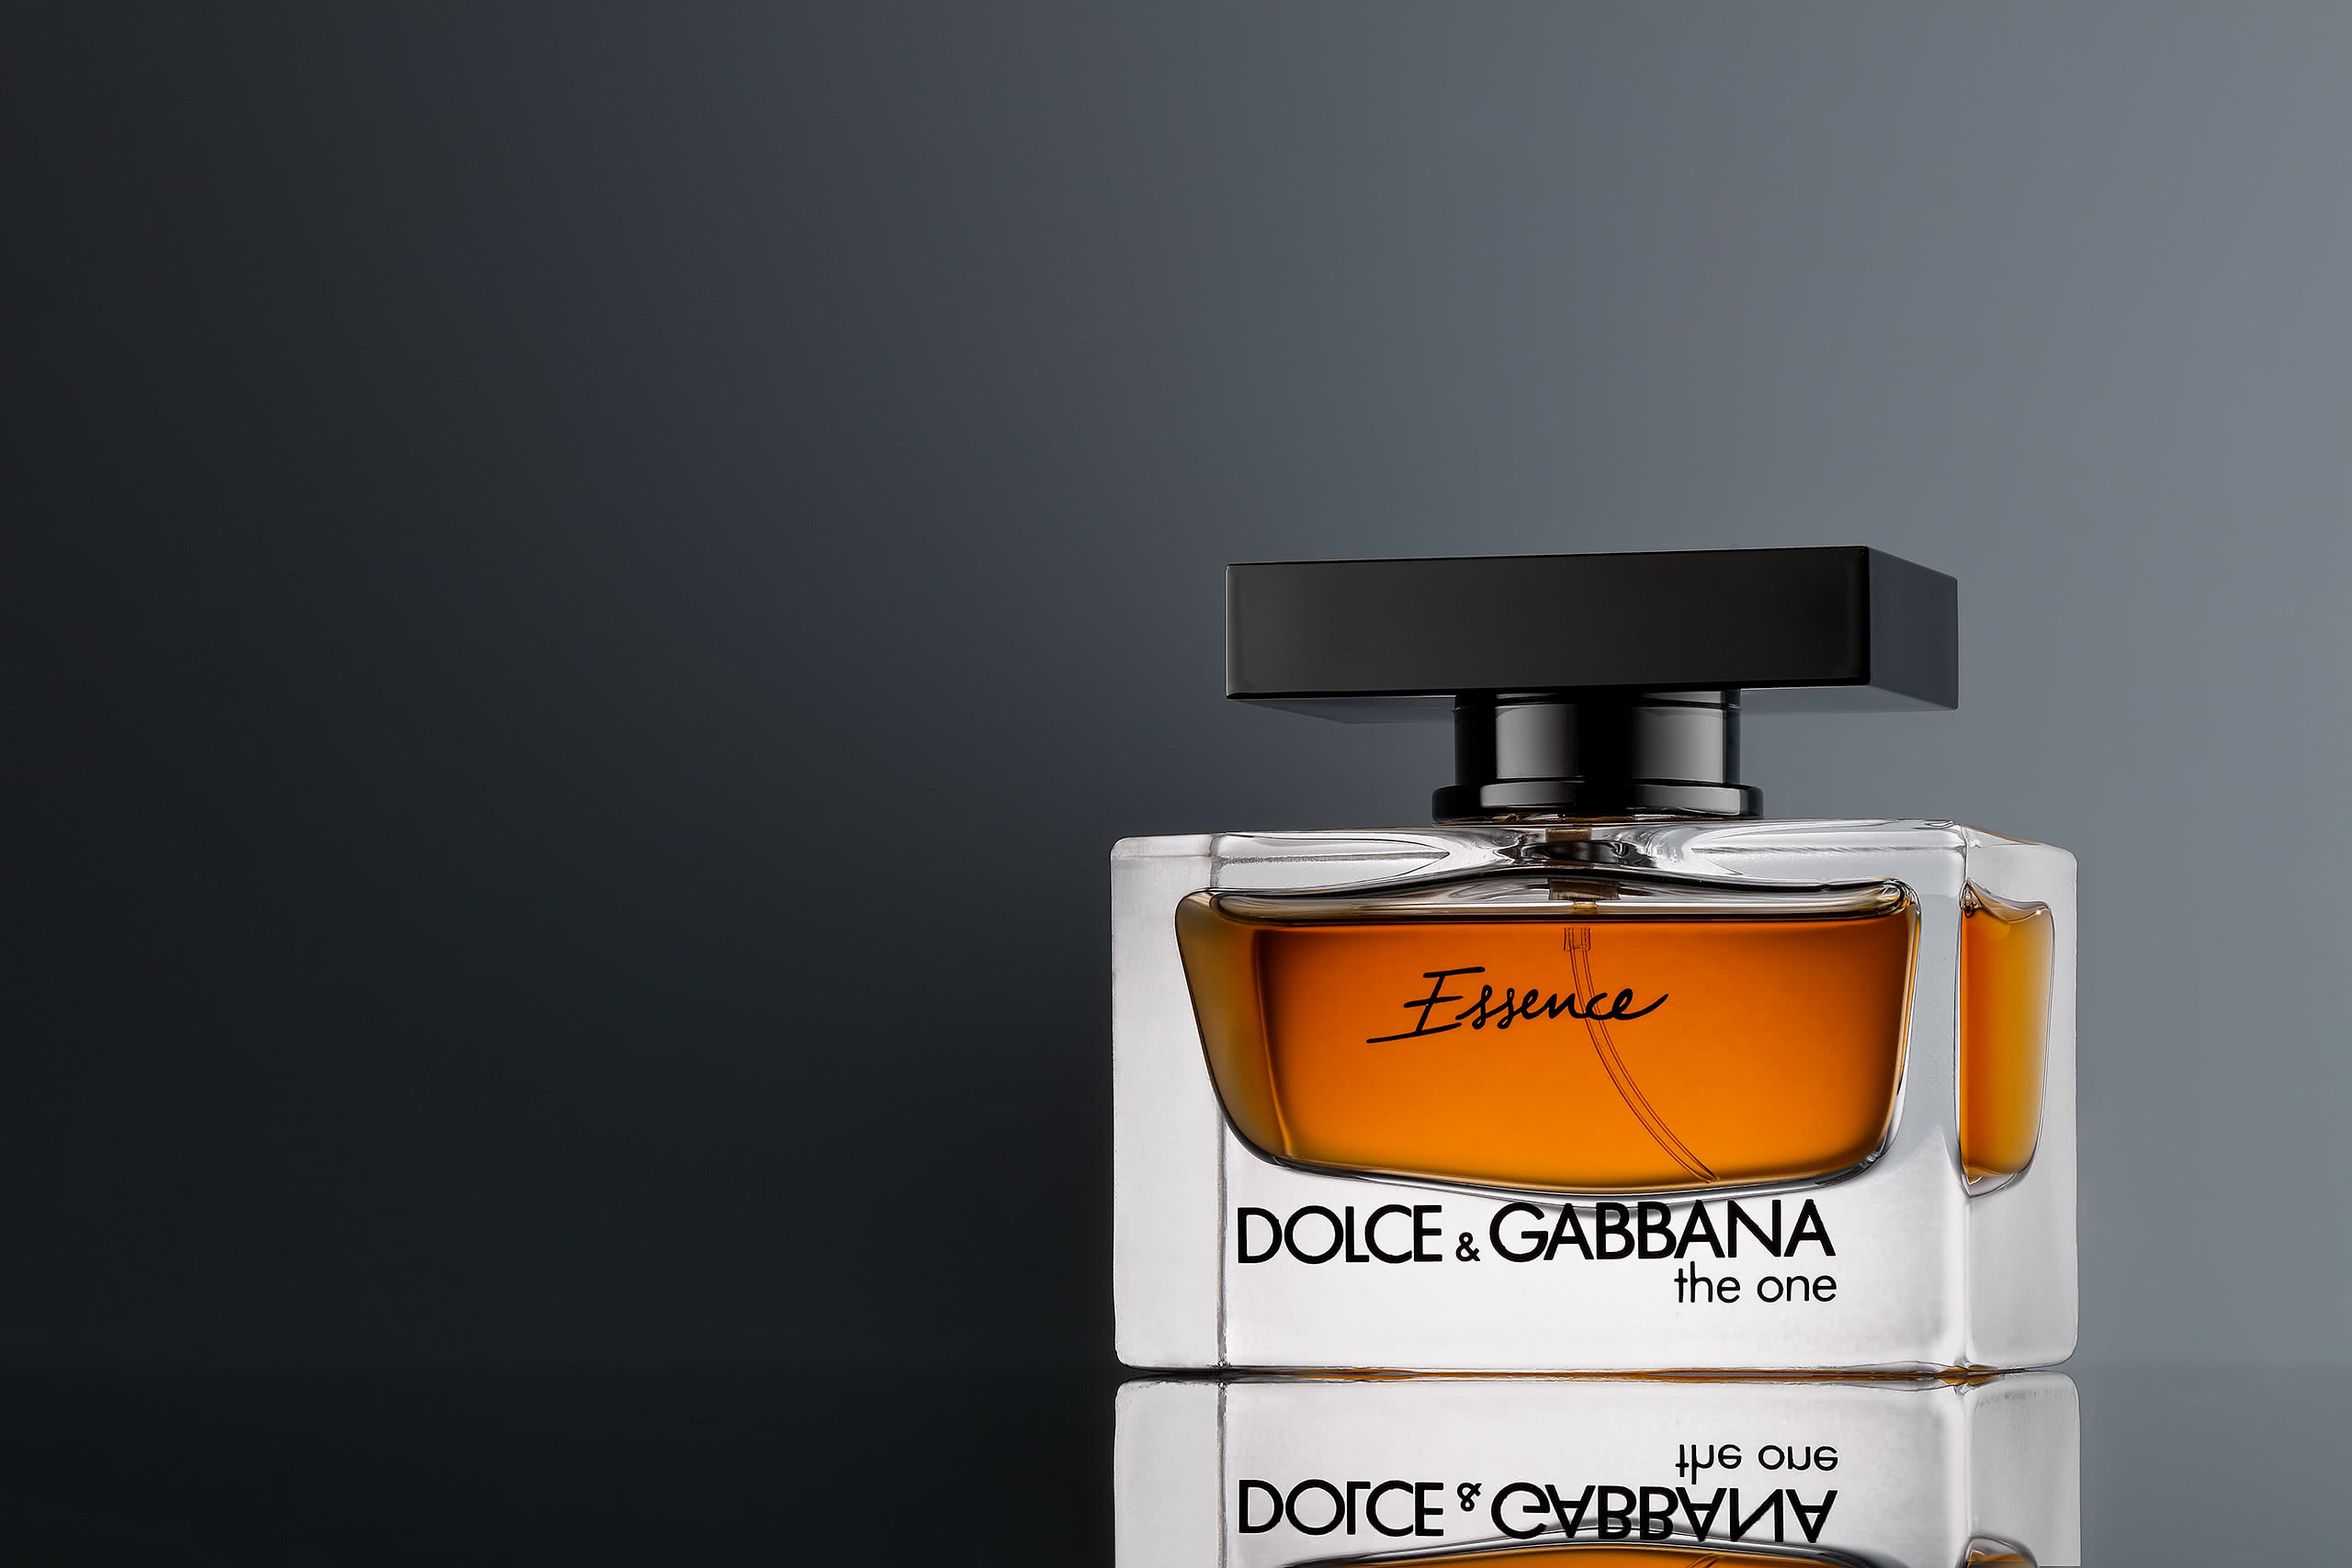 perfume product photograph gradient background